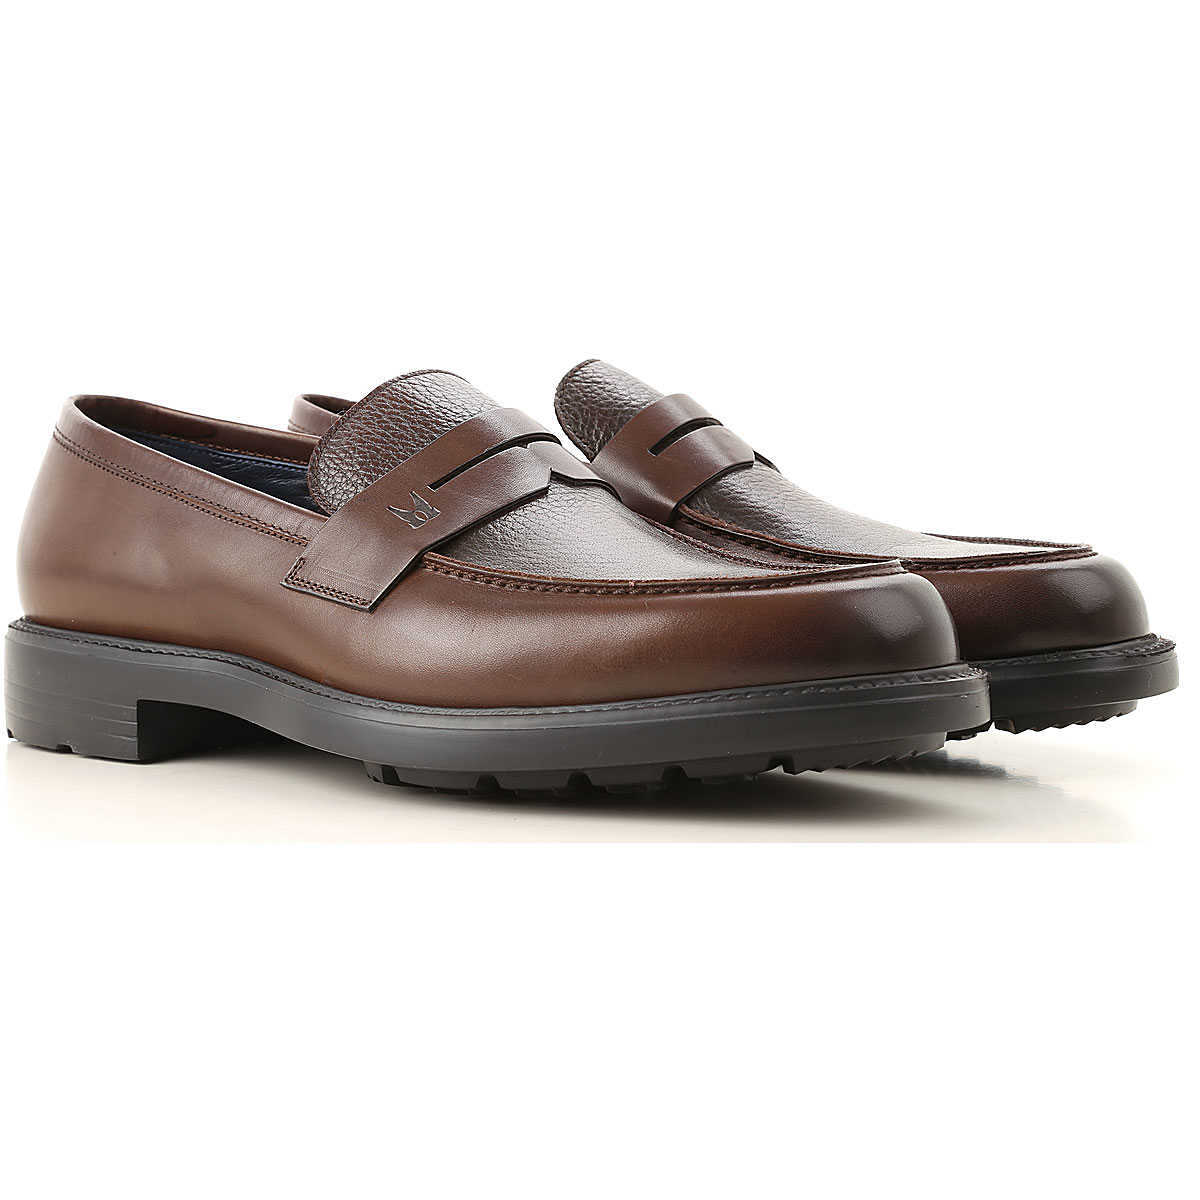 Moreschi Loafers for Men Brown Canada - GOOFASH - Mens LOAFERS